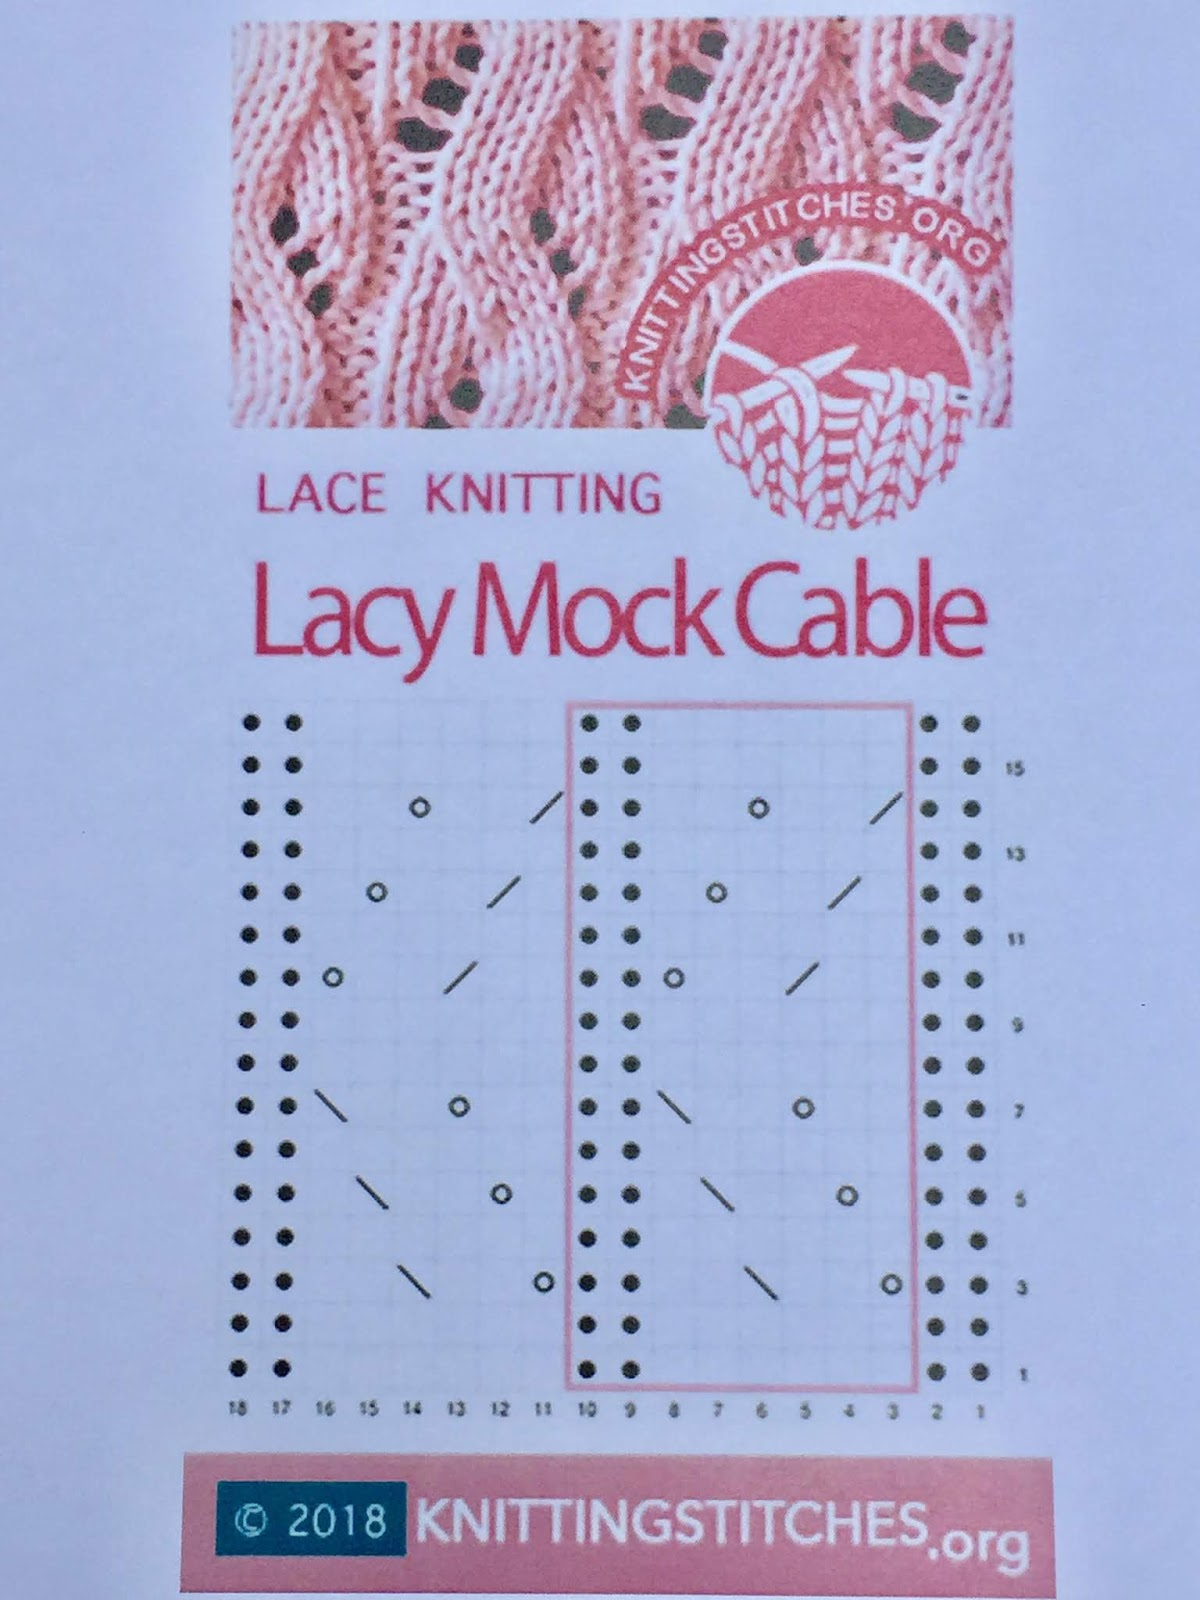 Knitting Stitches 2018 - Lacy Mock Cable